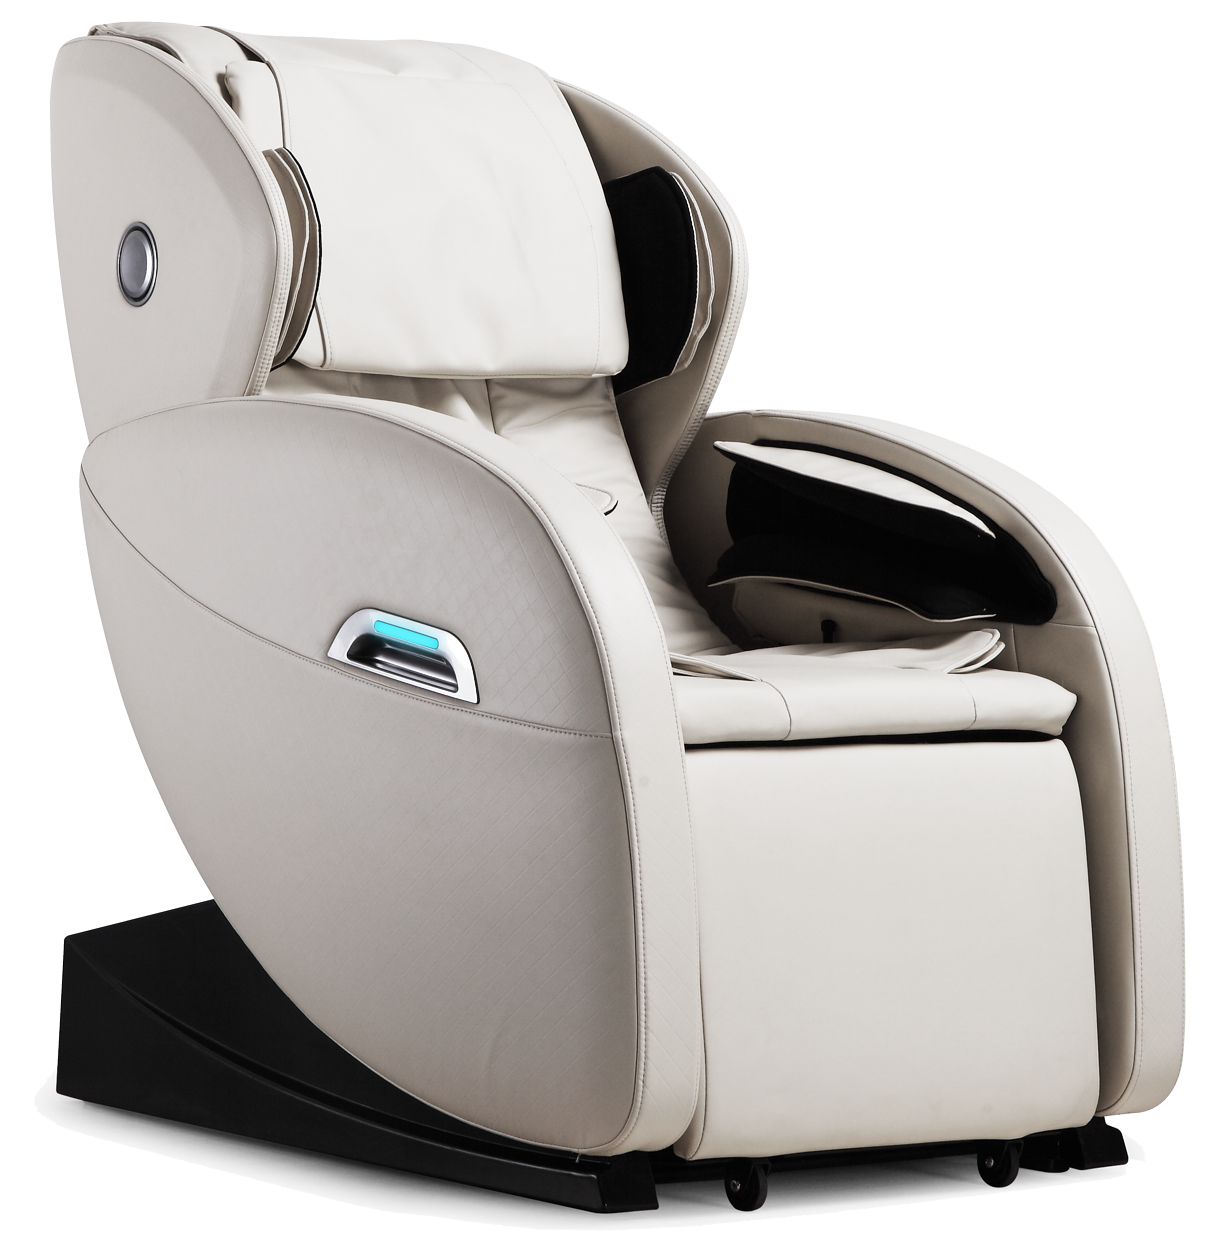 massage chair modern. the x6 massage chair, blends seamlessly into it\u0027s surroundings like no other before it, with its modern stylish lines and welcoming curves, more art chair w